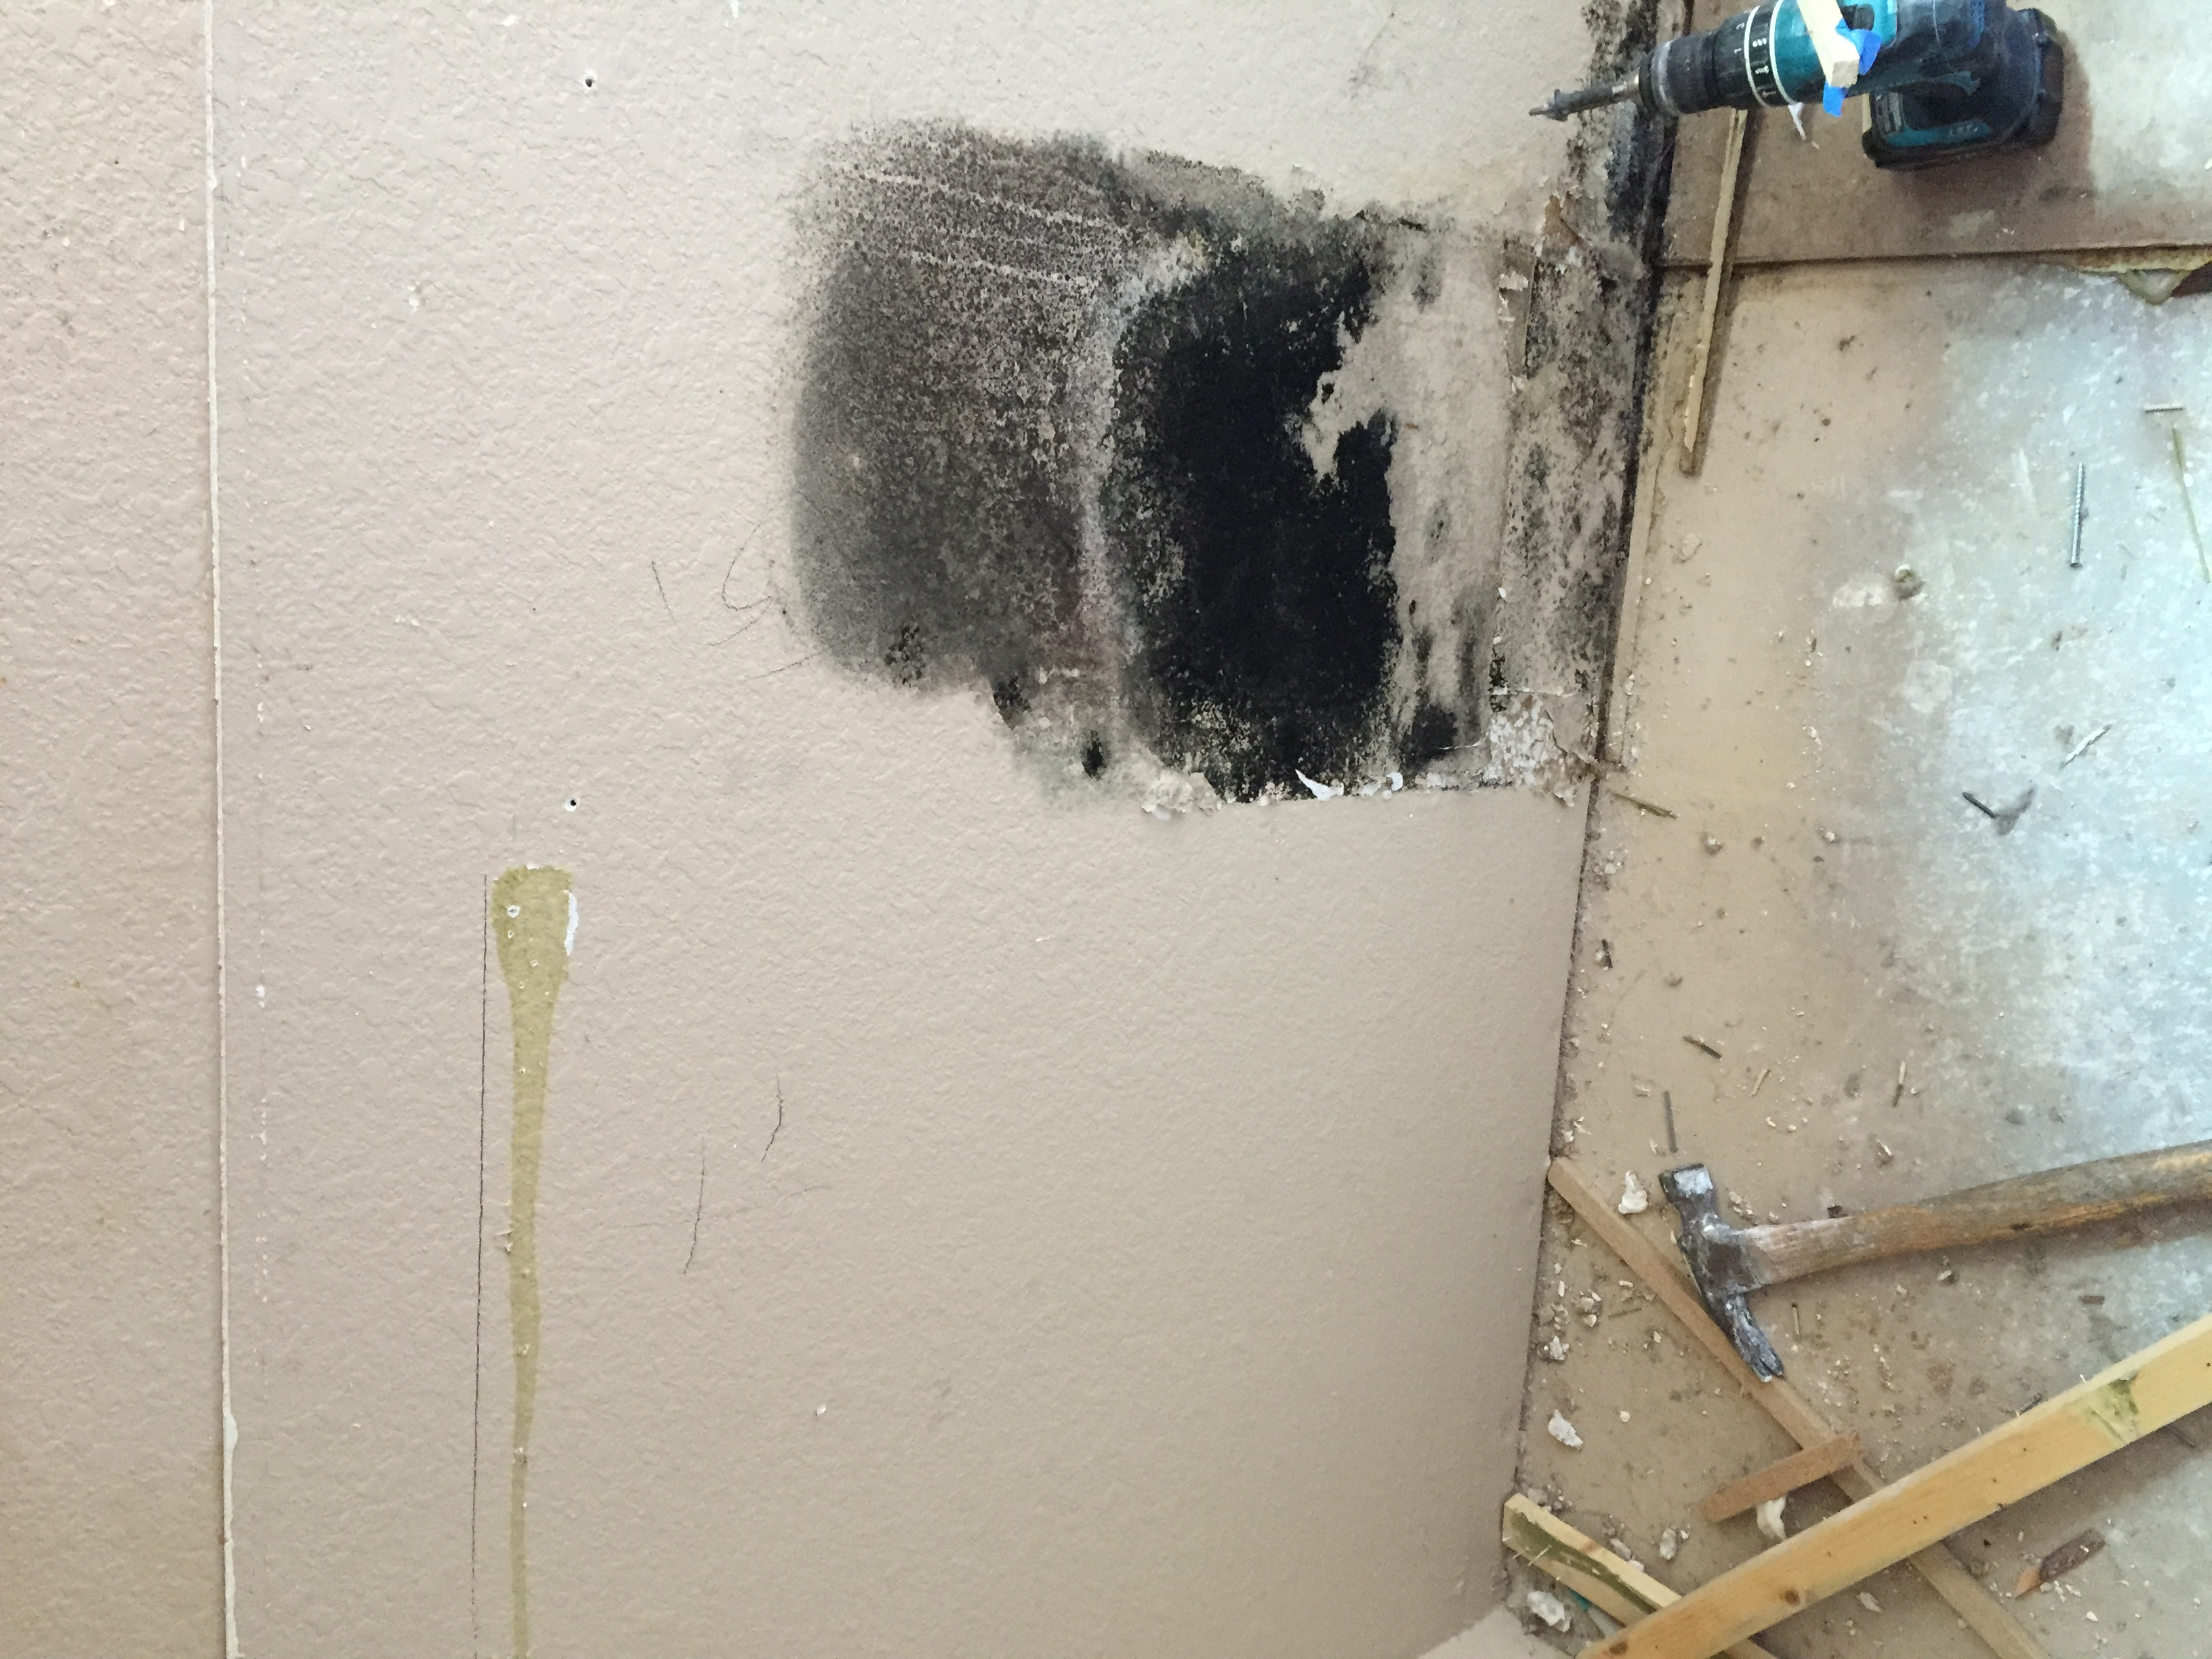 Black Mold Isn't the Only Type of Toxic Mold Causing Symptoms